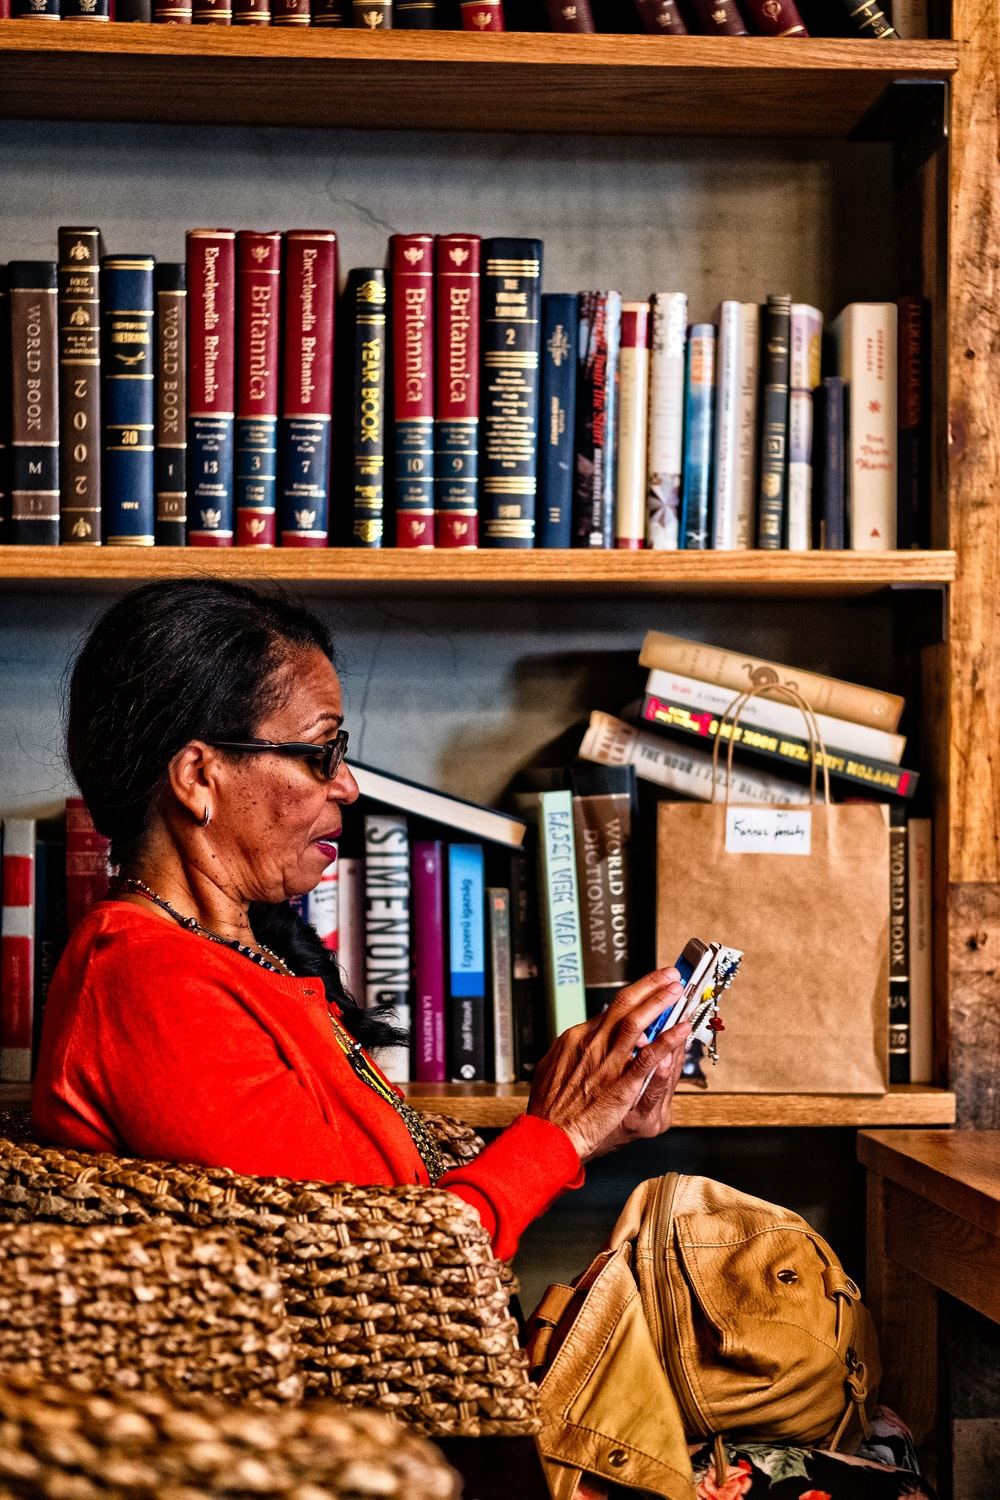 woman sitting on chair using Android smartphone near bookshelf